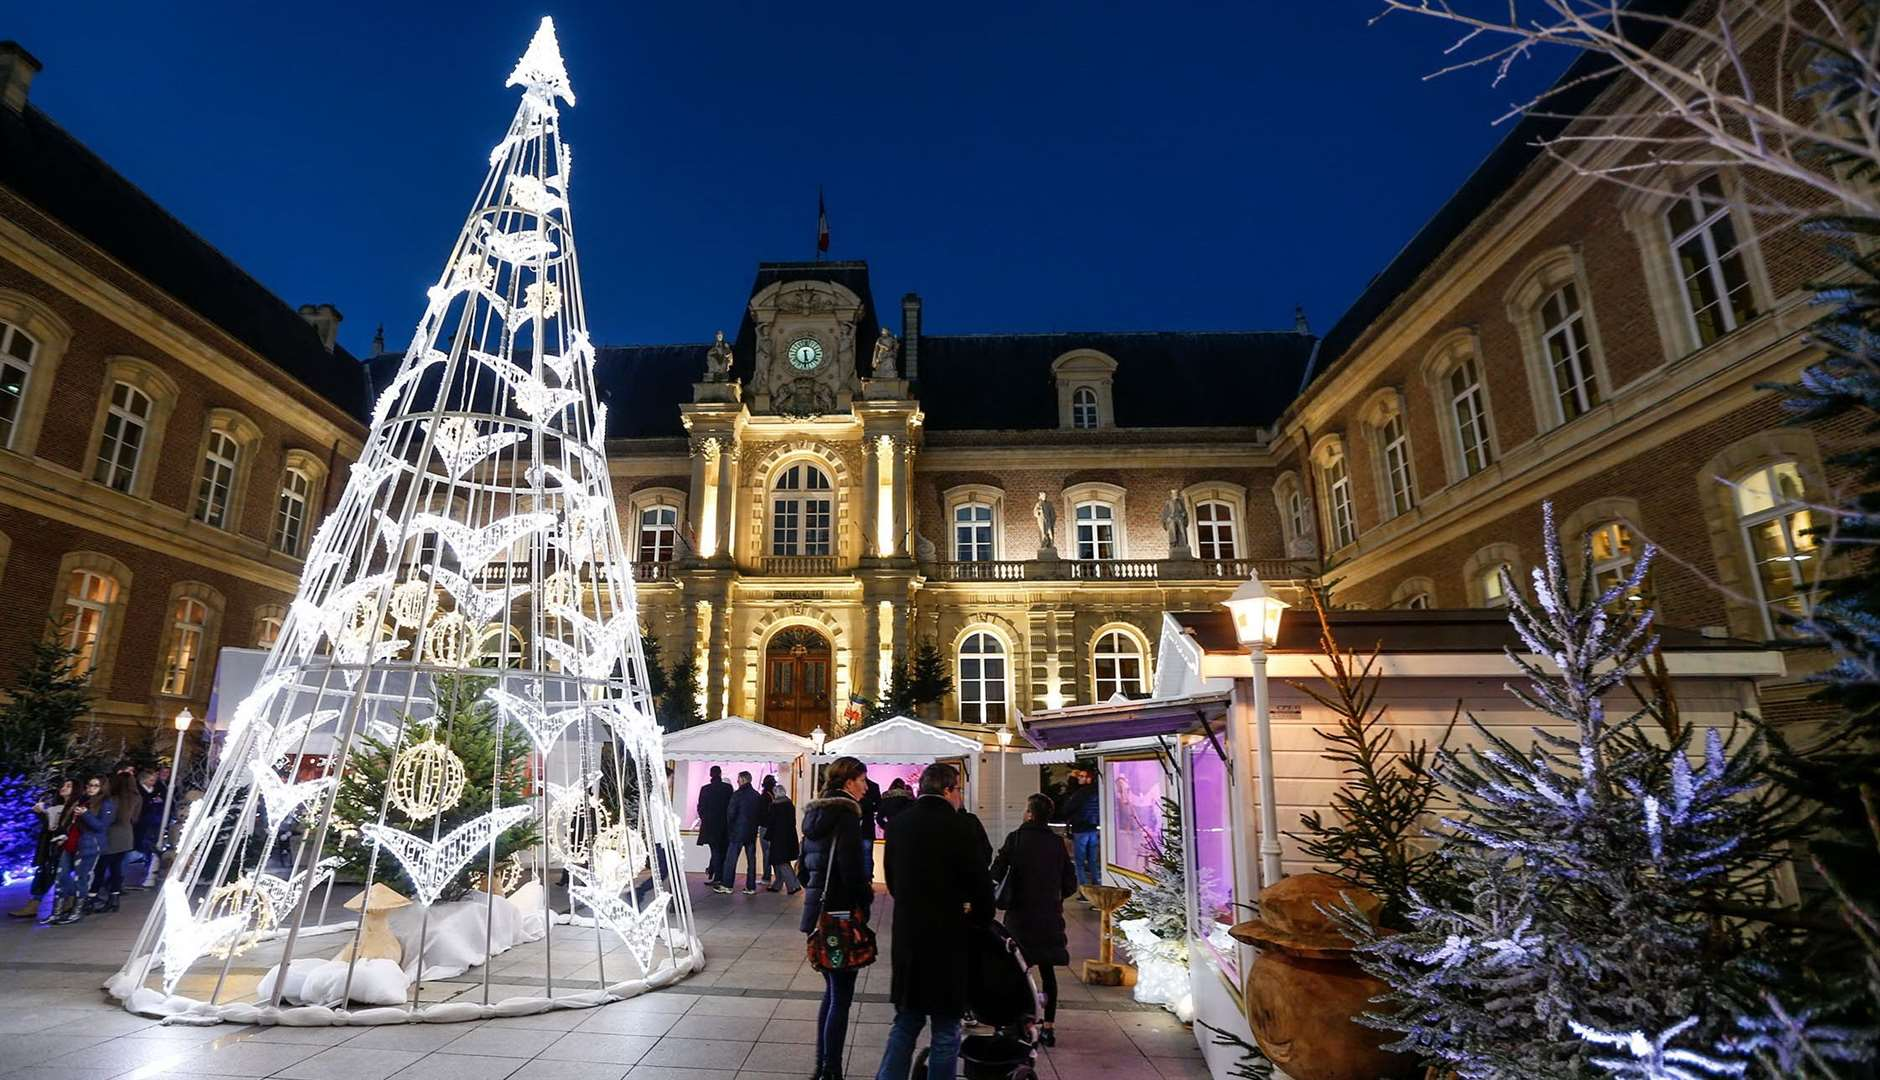 The French Christmas Market in Amiens covers a full two kilometres of the largely pedestrianised centre. Photography: L.Rousselin & S.Coquille.